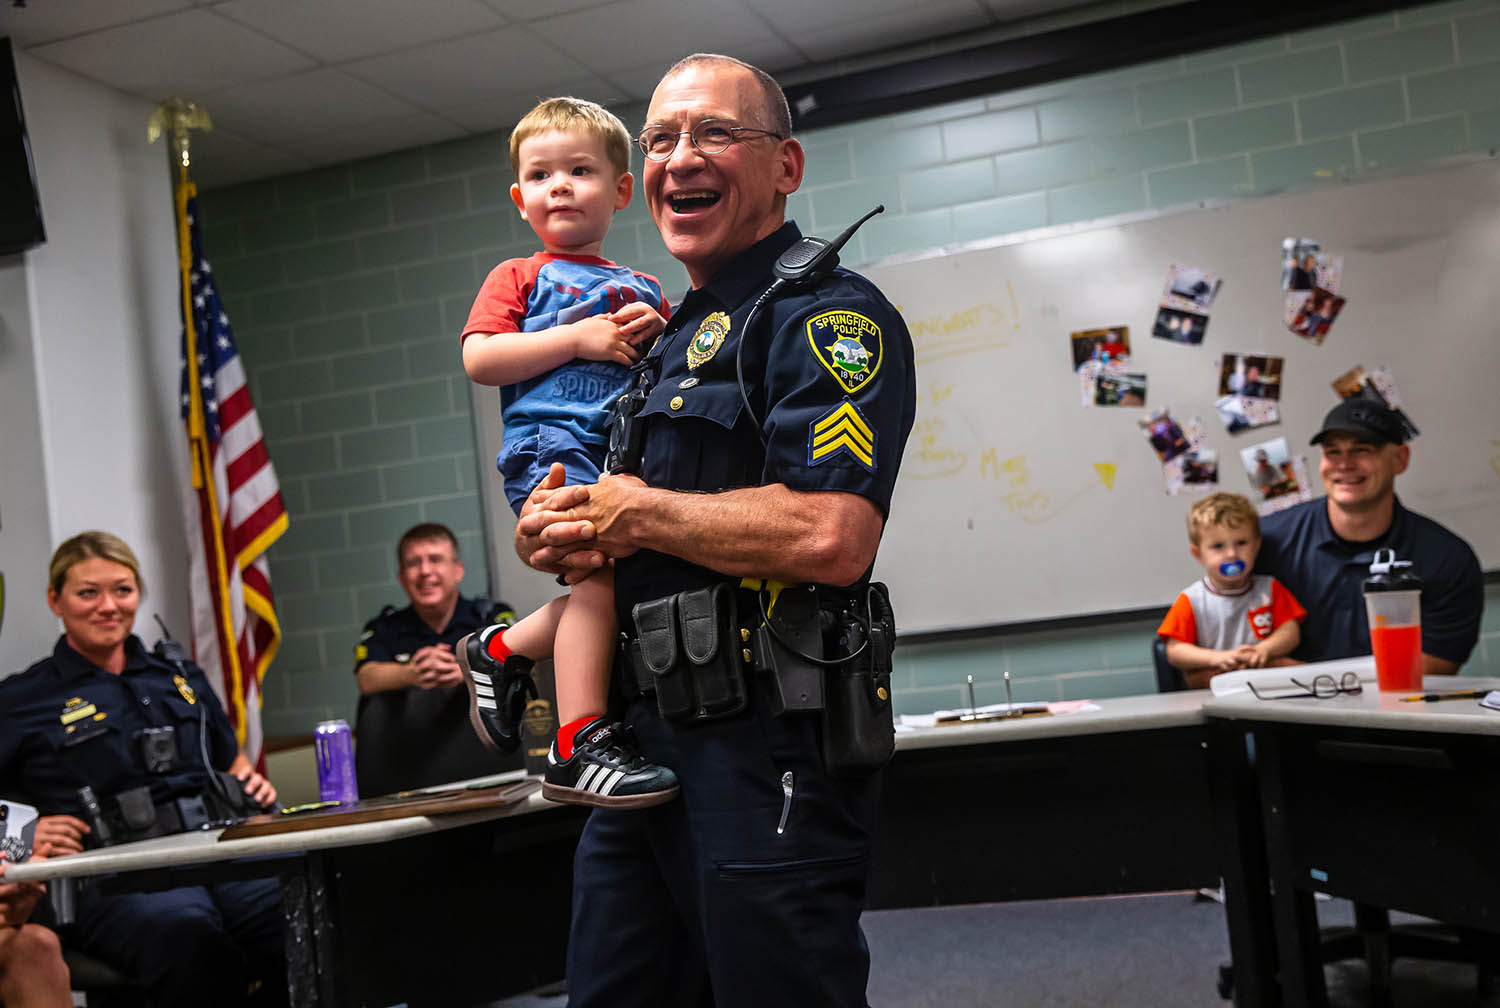 """Sgt. Gerry Castles thanks his family, friends and fellow police officers with the Springfield Police Department as he holds his grandson, Leo Warren, 2, during a ceremony marking his retirement after 28 years as a police officer during his last squad meeting at Municipal Center East, Friday, May 31, 2019, in Springfield, Ill. """"You get into this job because you think youÕre gonna effect peoples lives and then somewhere in it you finally realize that you really arenÕt...but within it there are specific lives you do affect,"""" said Castles as he reflected on cases where people have reached out to him after calls to tell him that he saved their lives. [Justin L. Fowler/The State Journal-Register]"""